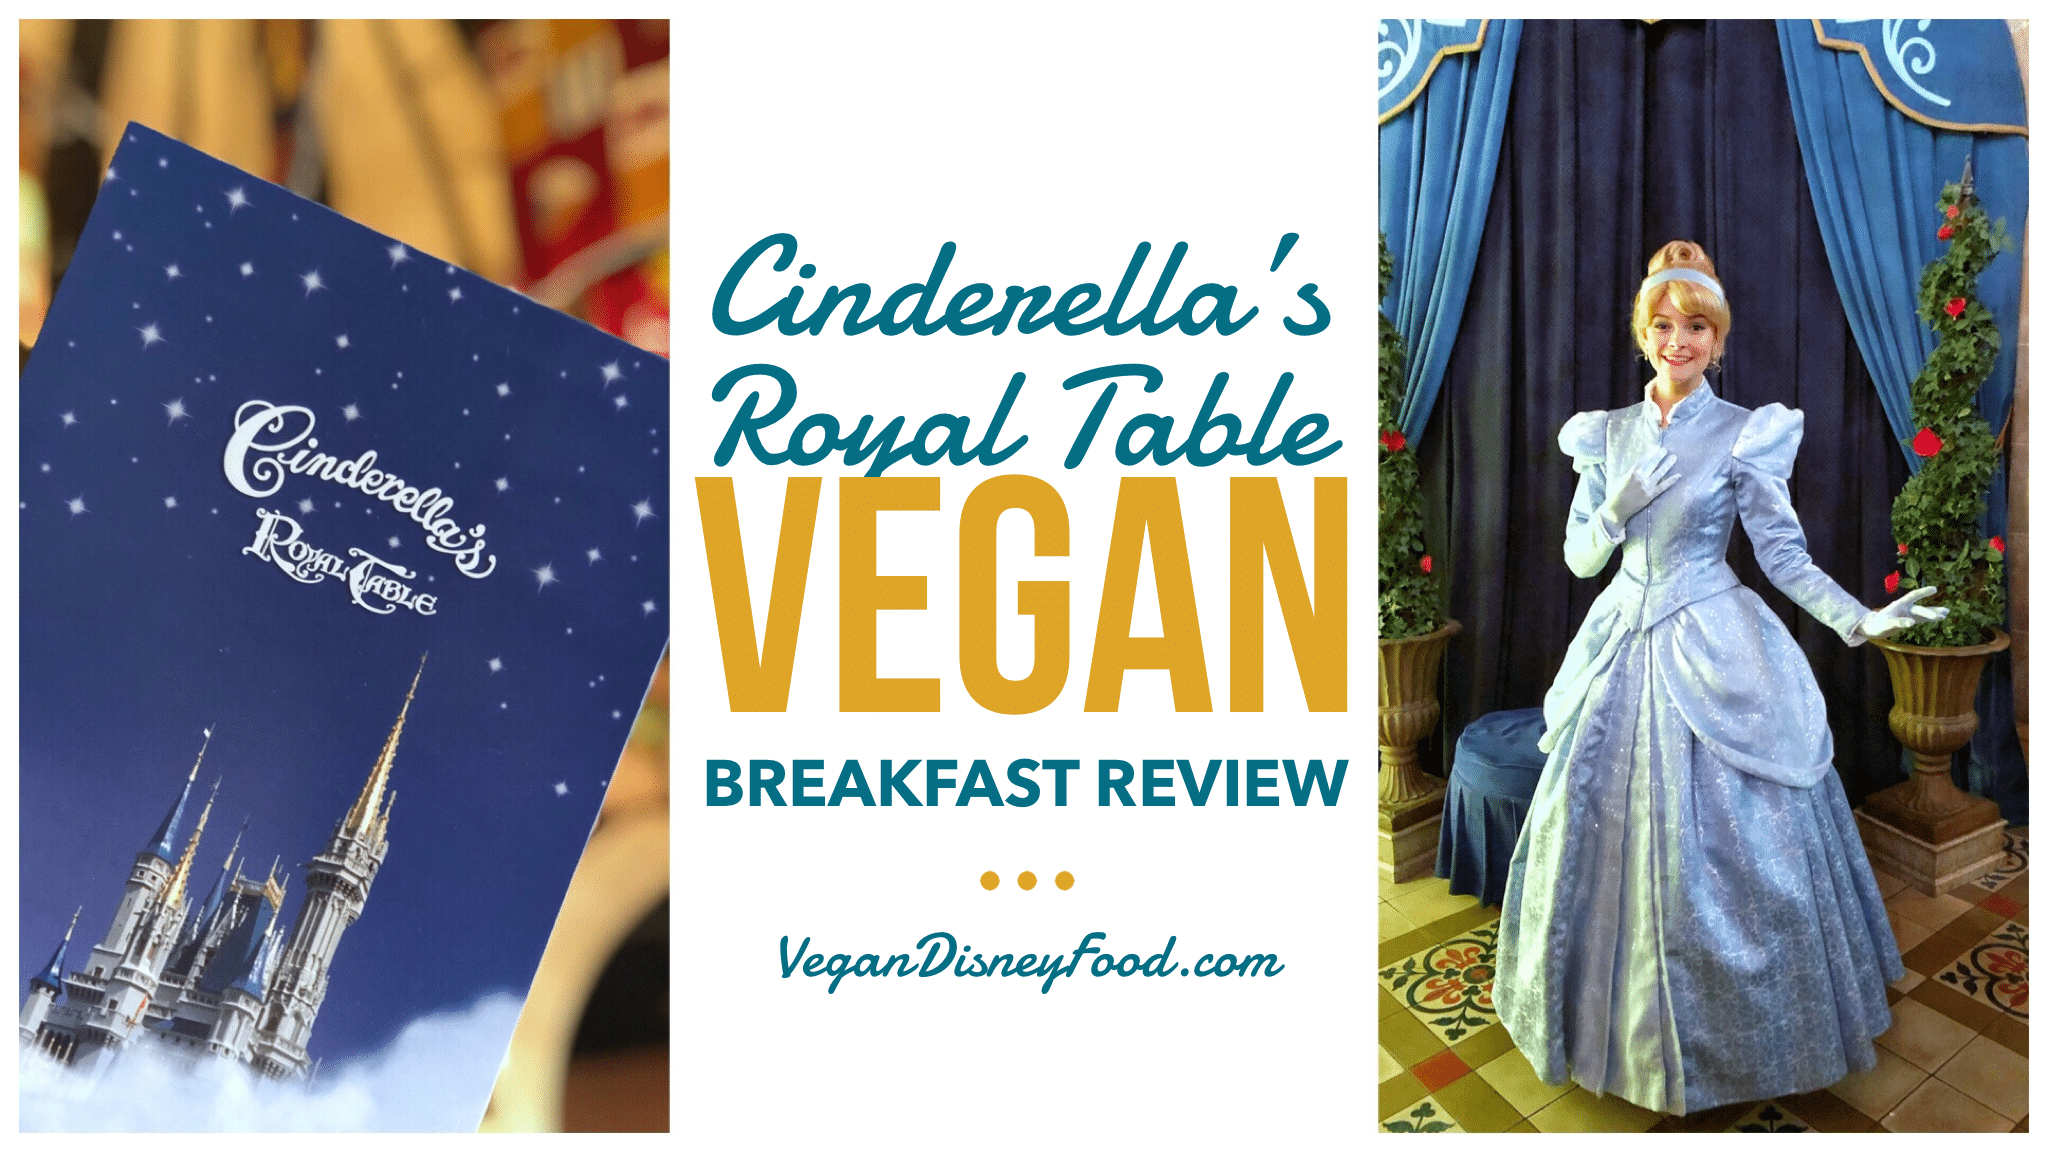 Cinderella's Royal Table Vegan Breakfast Review in the Magic Kingdom at Walt Disney World